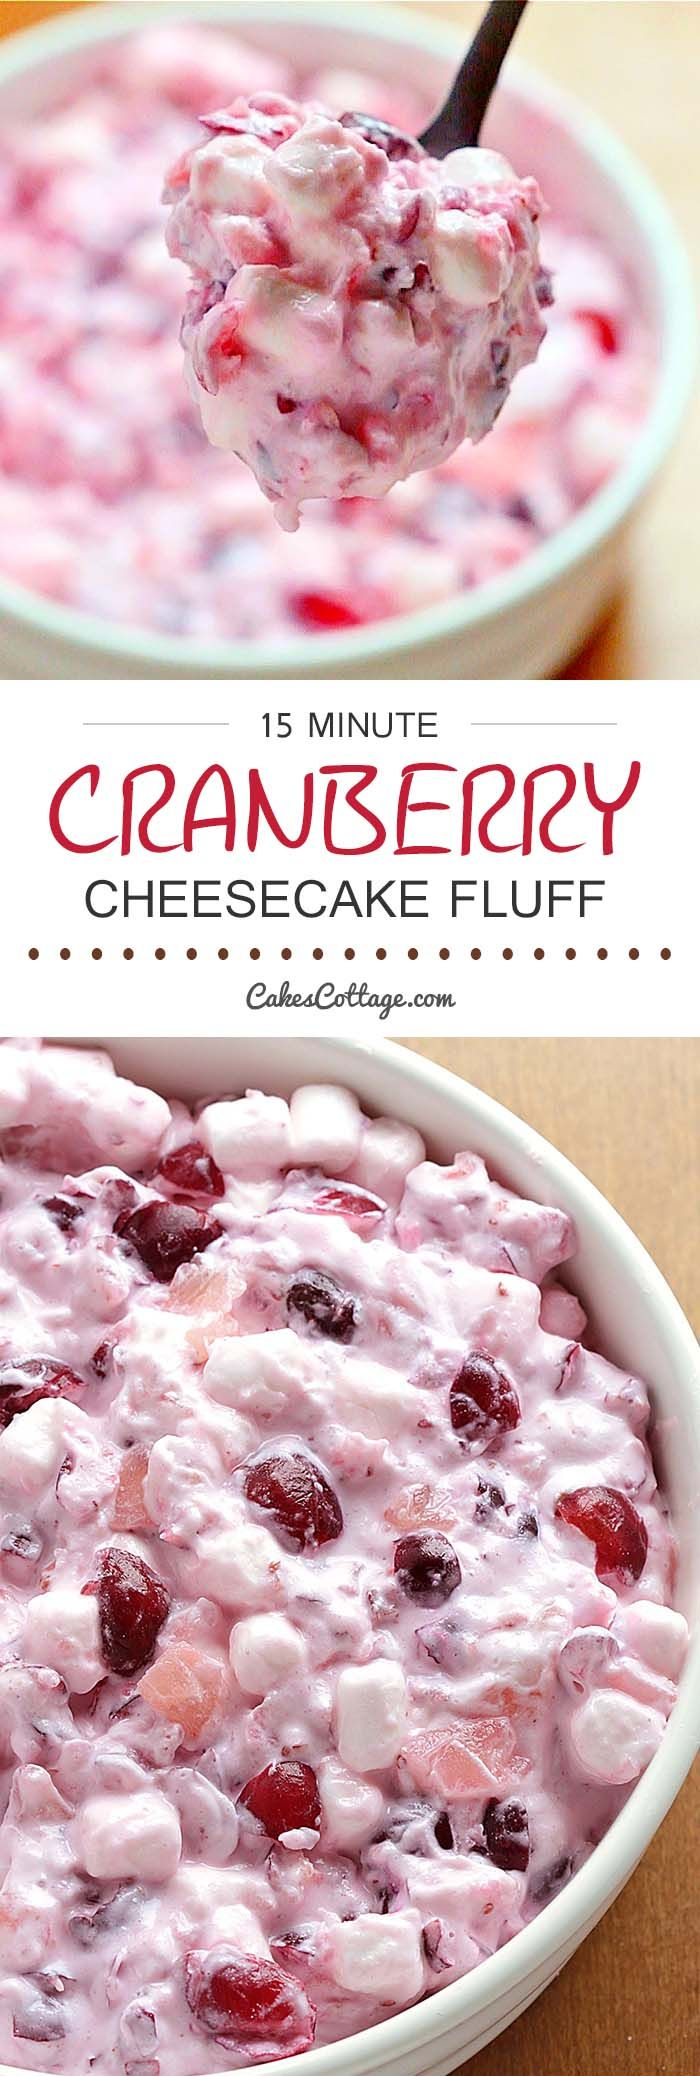 Cranberry Cheesecake Fluff Salad – delicious, absolutely loaded with cranberries tossed in a thick, rich and creamy cheesecake mixture, a must have for Thanksgiving and Christmas family get-togethers